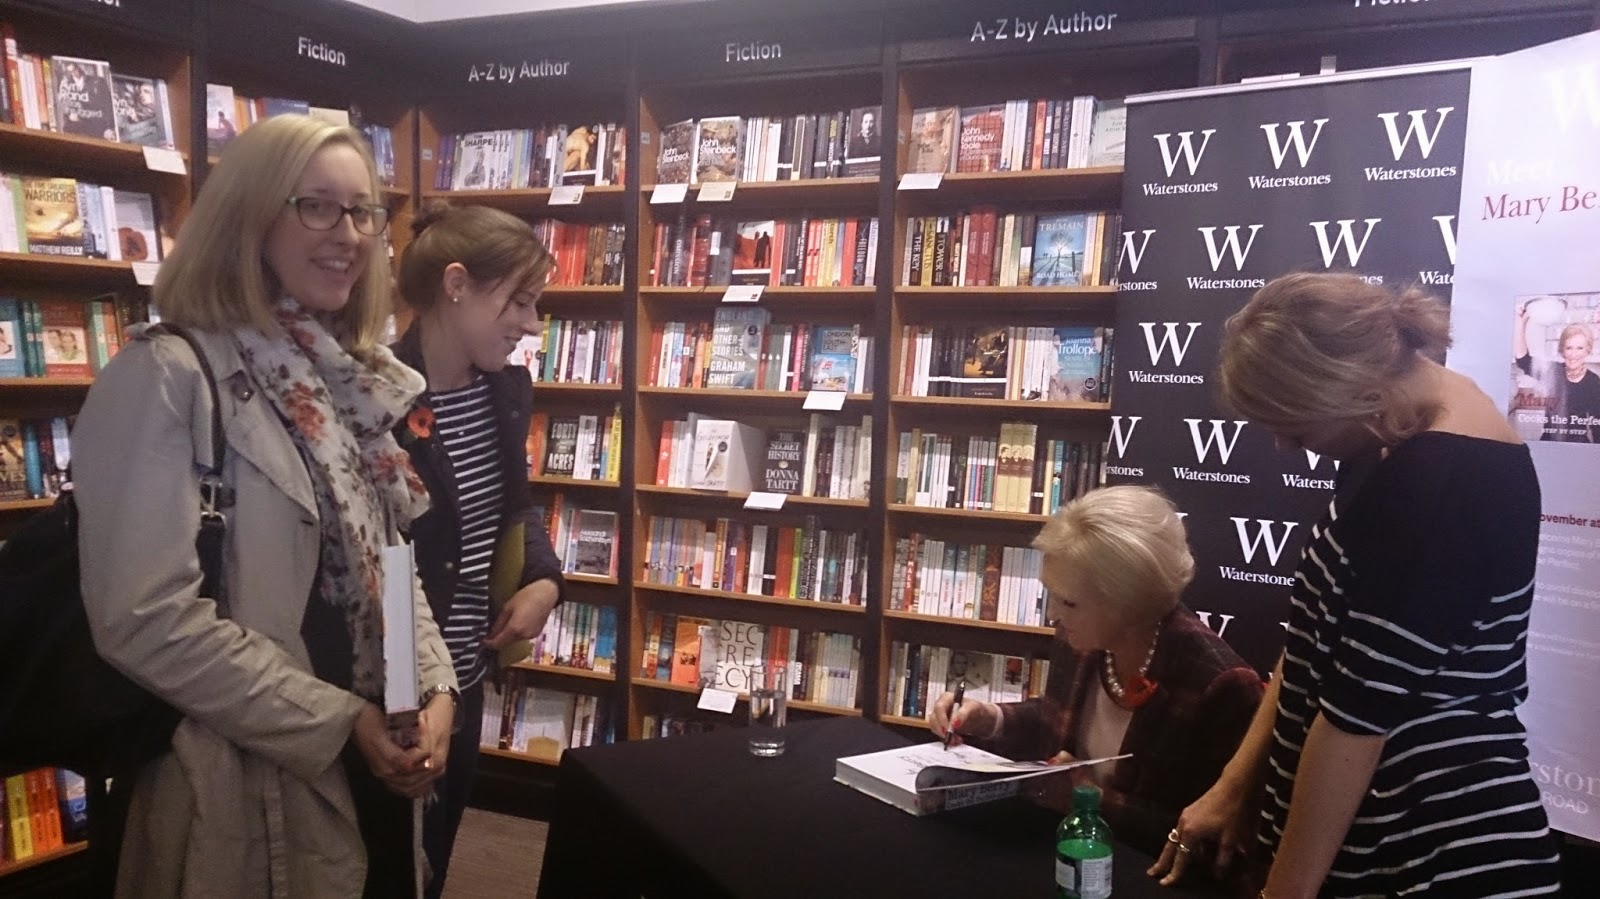 http://www.morethanjustacupcakelover.co.uk/2014/11/the-one-where-i-met-mary-berry.html